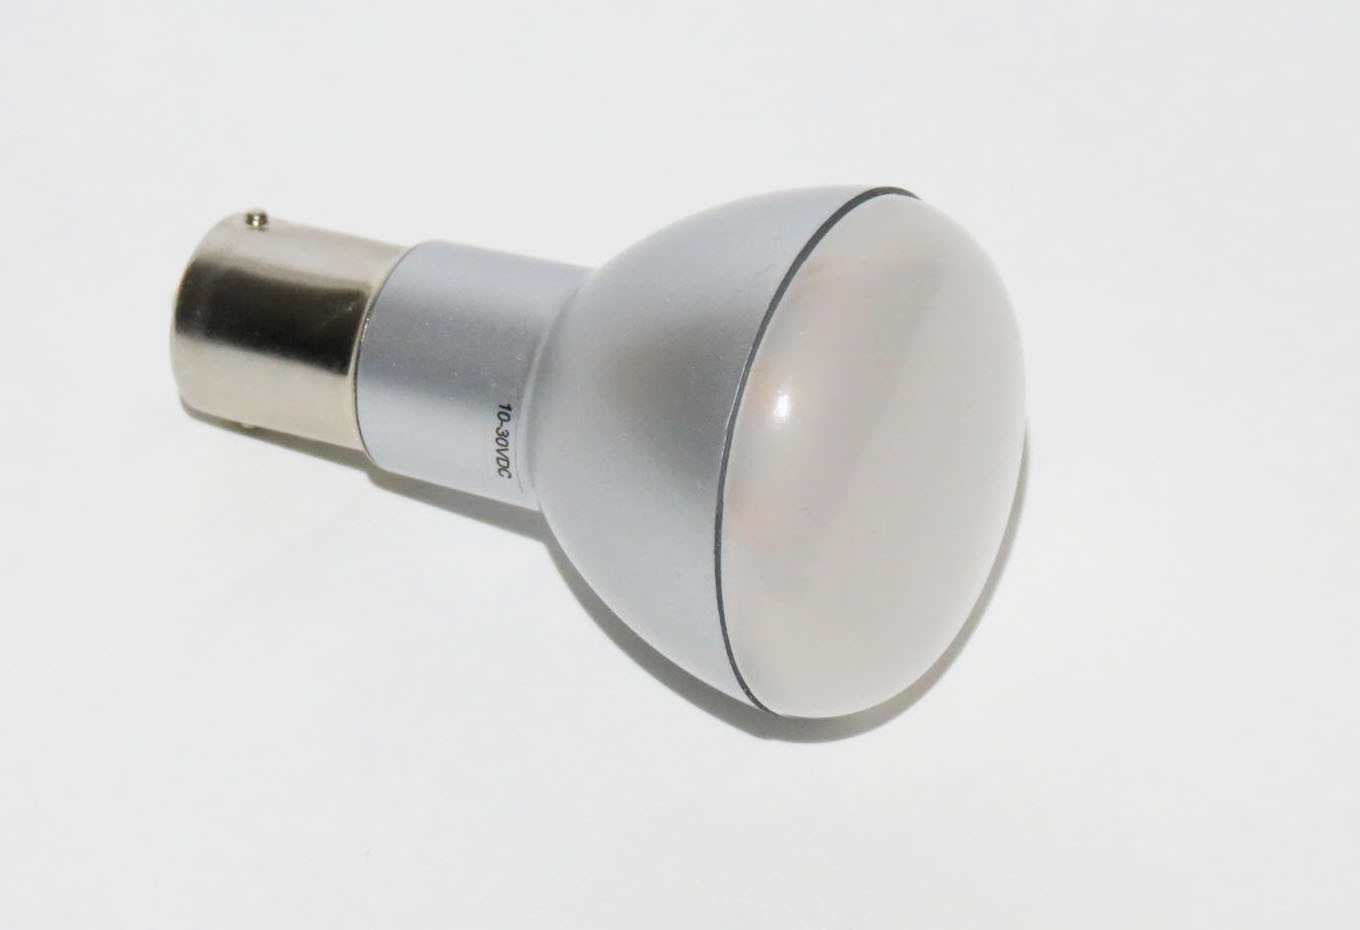 BA15s LED Mini Globe 10-30V warmweiß